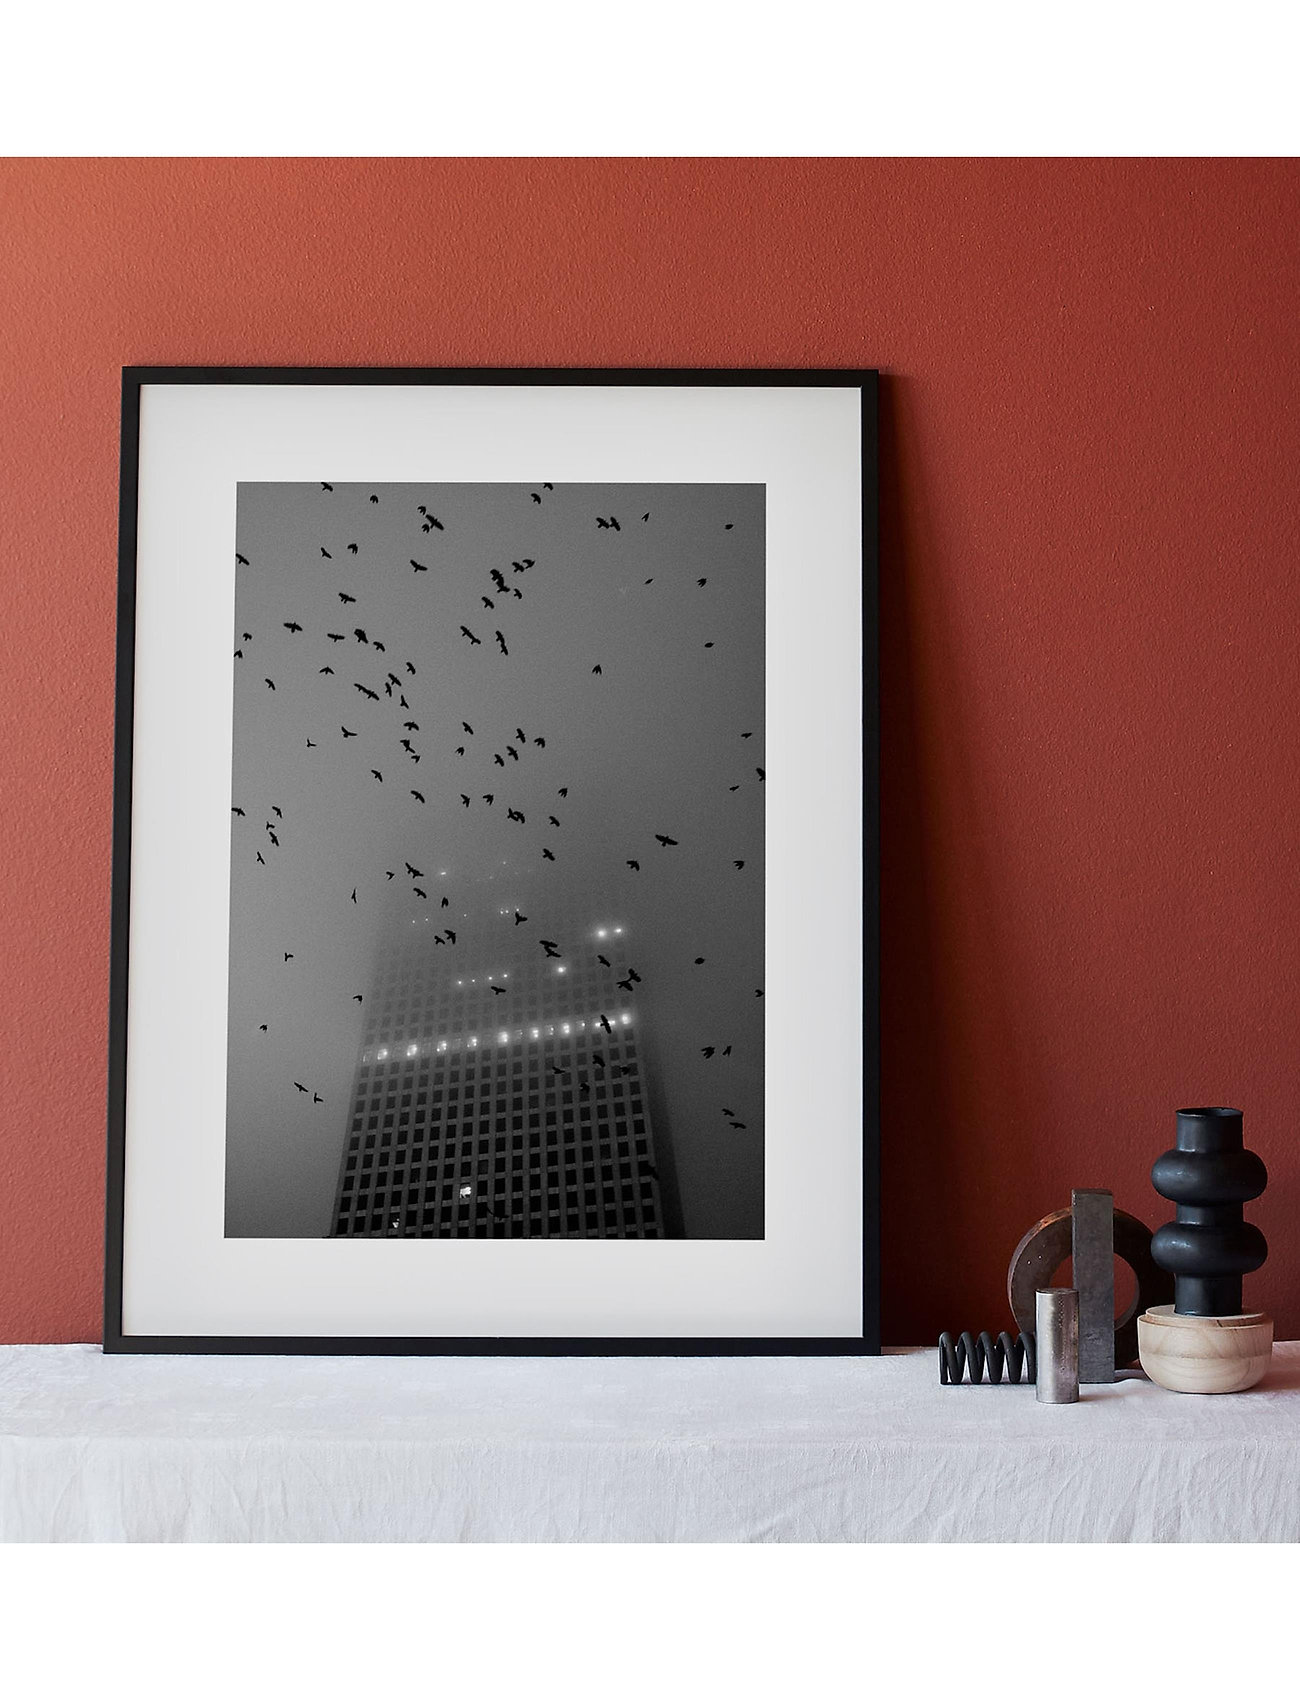 Democratic Gallery - Poster Monochrome Birds over City - home decor - black - 1